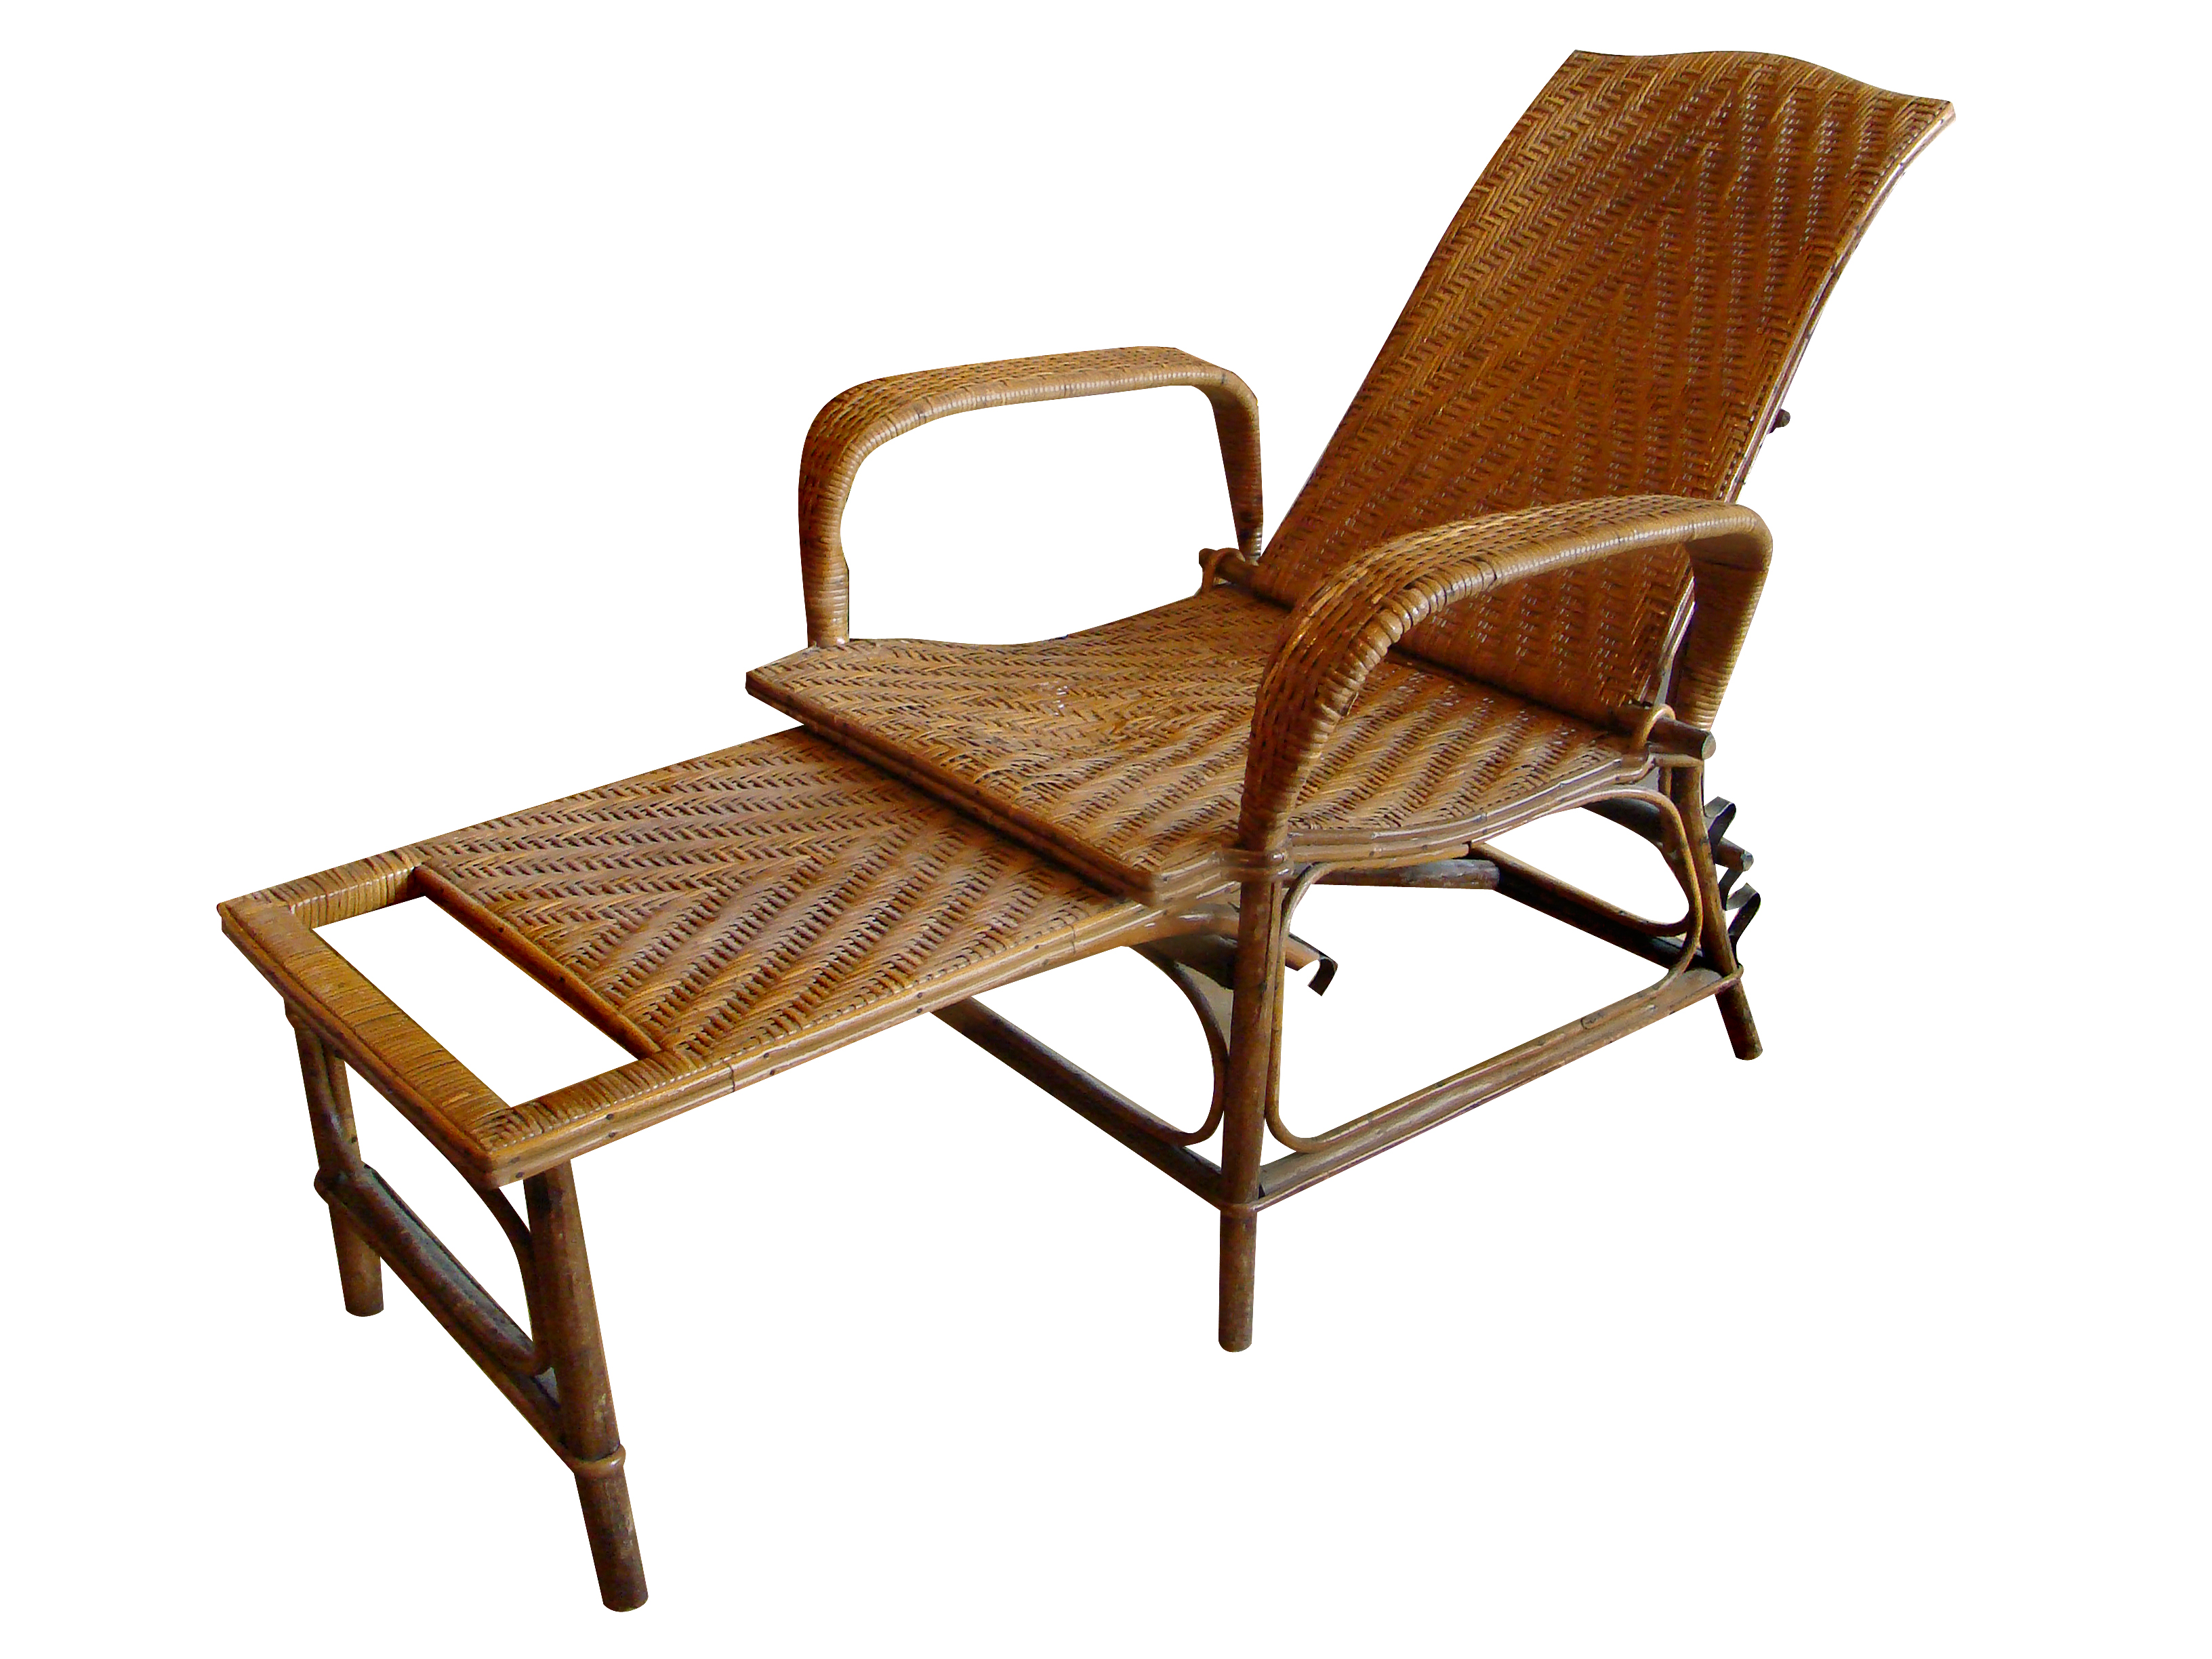 Favorite Vintage Rattan and Bamboo Chaise Lounge | Le Barn Antiques  EF24